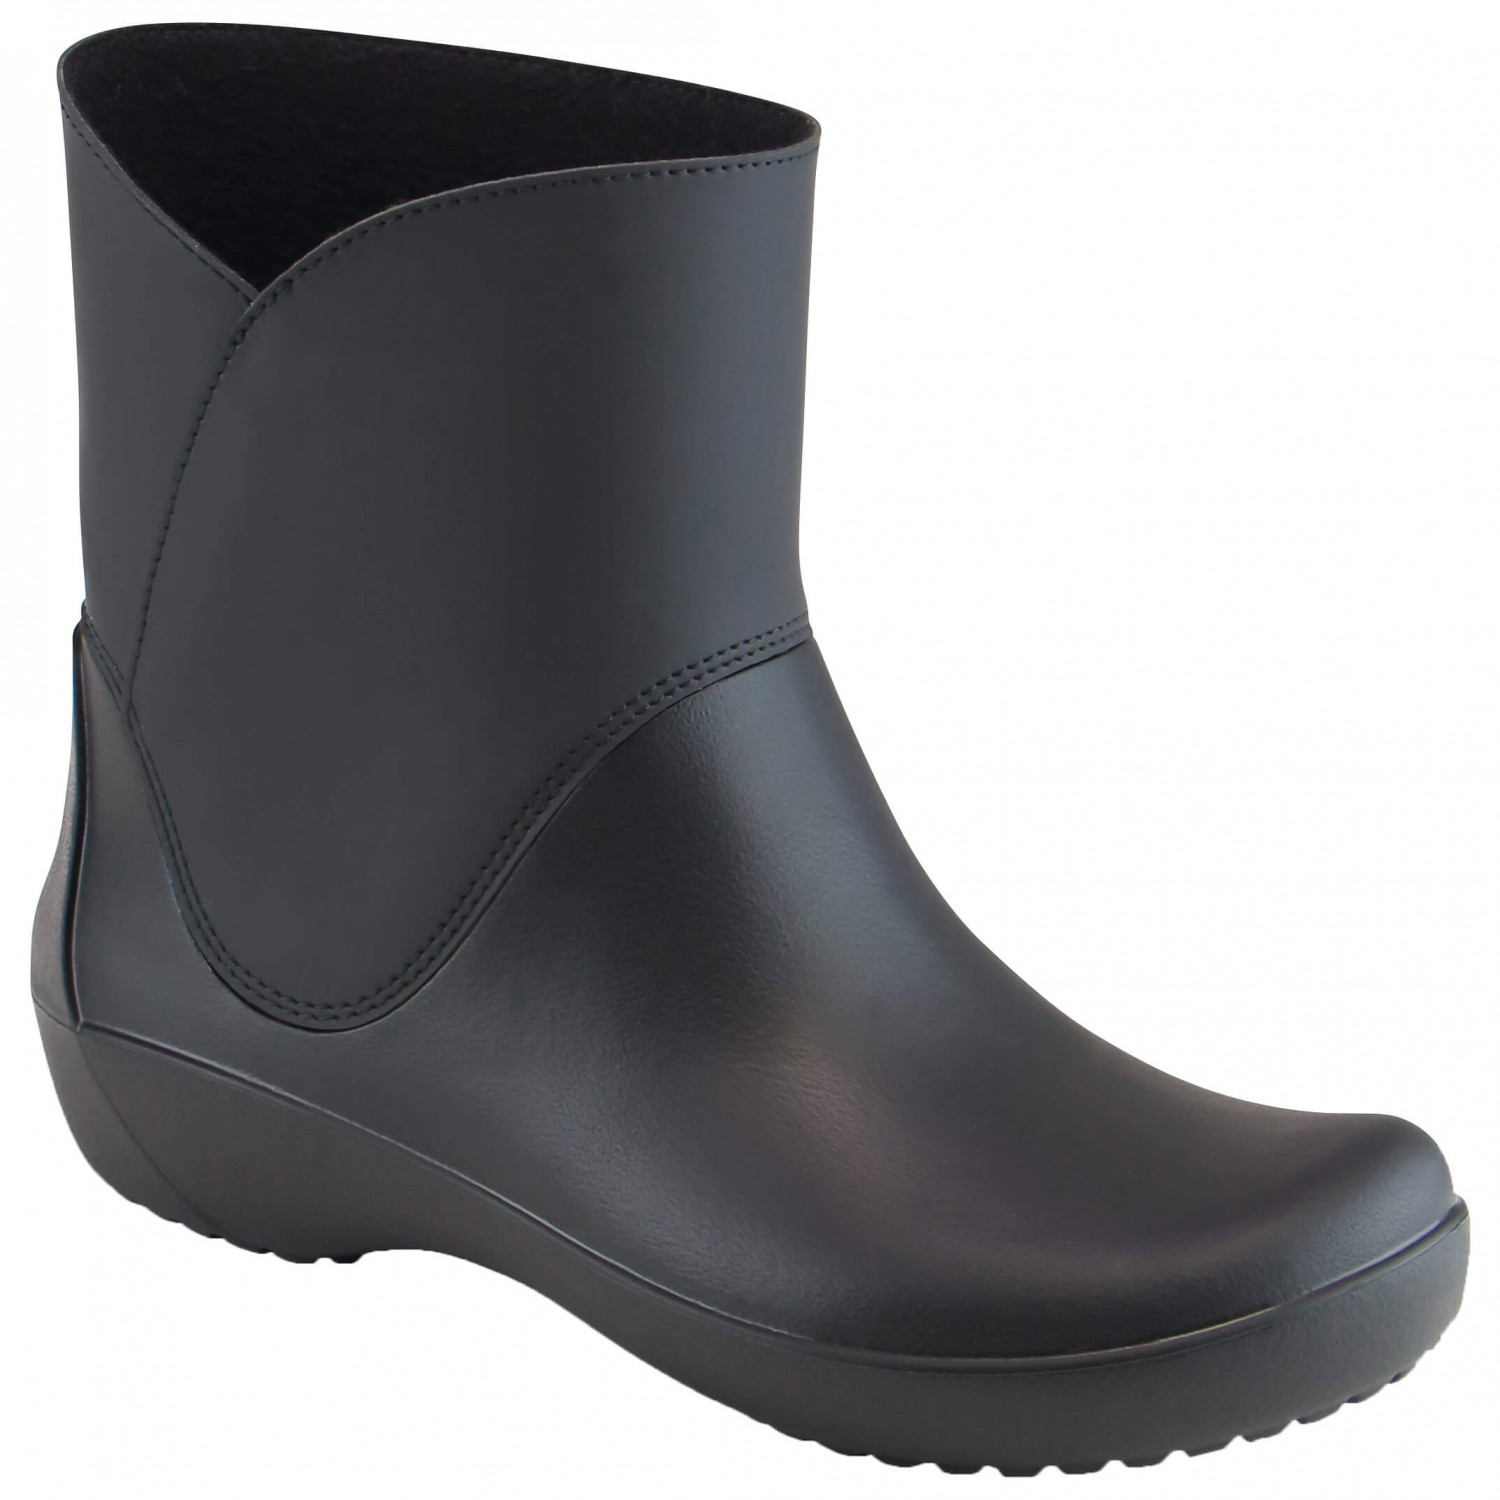 crocs women 39 s rainfloe bootie gummistiefel. Black Bedroom Furniture Sets. Home Design Ideas